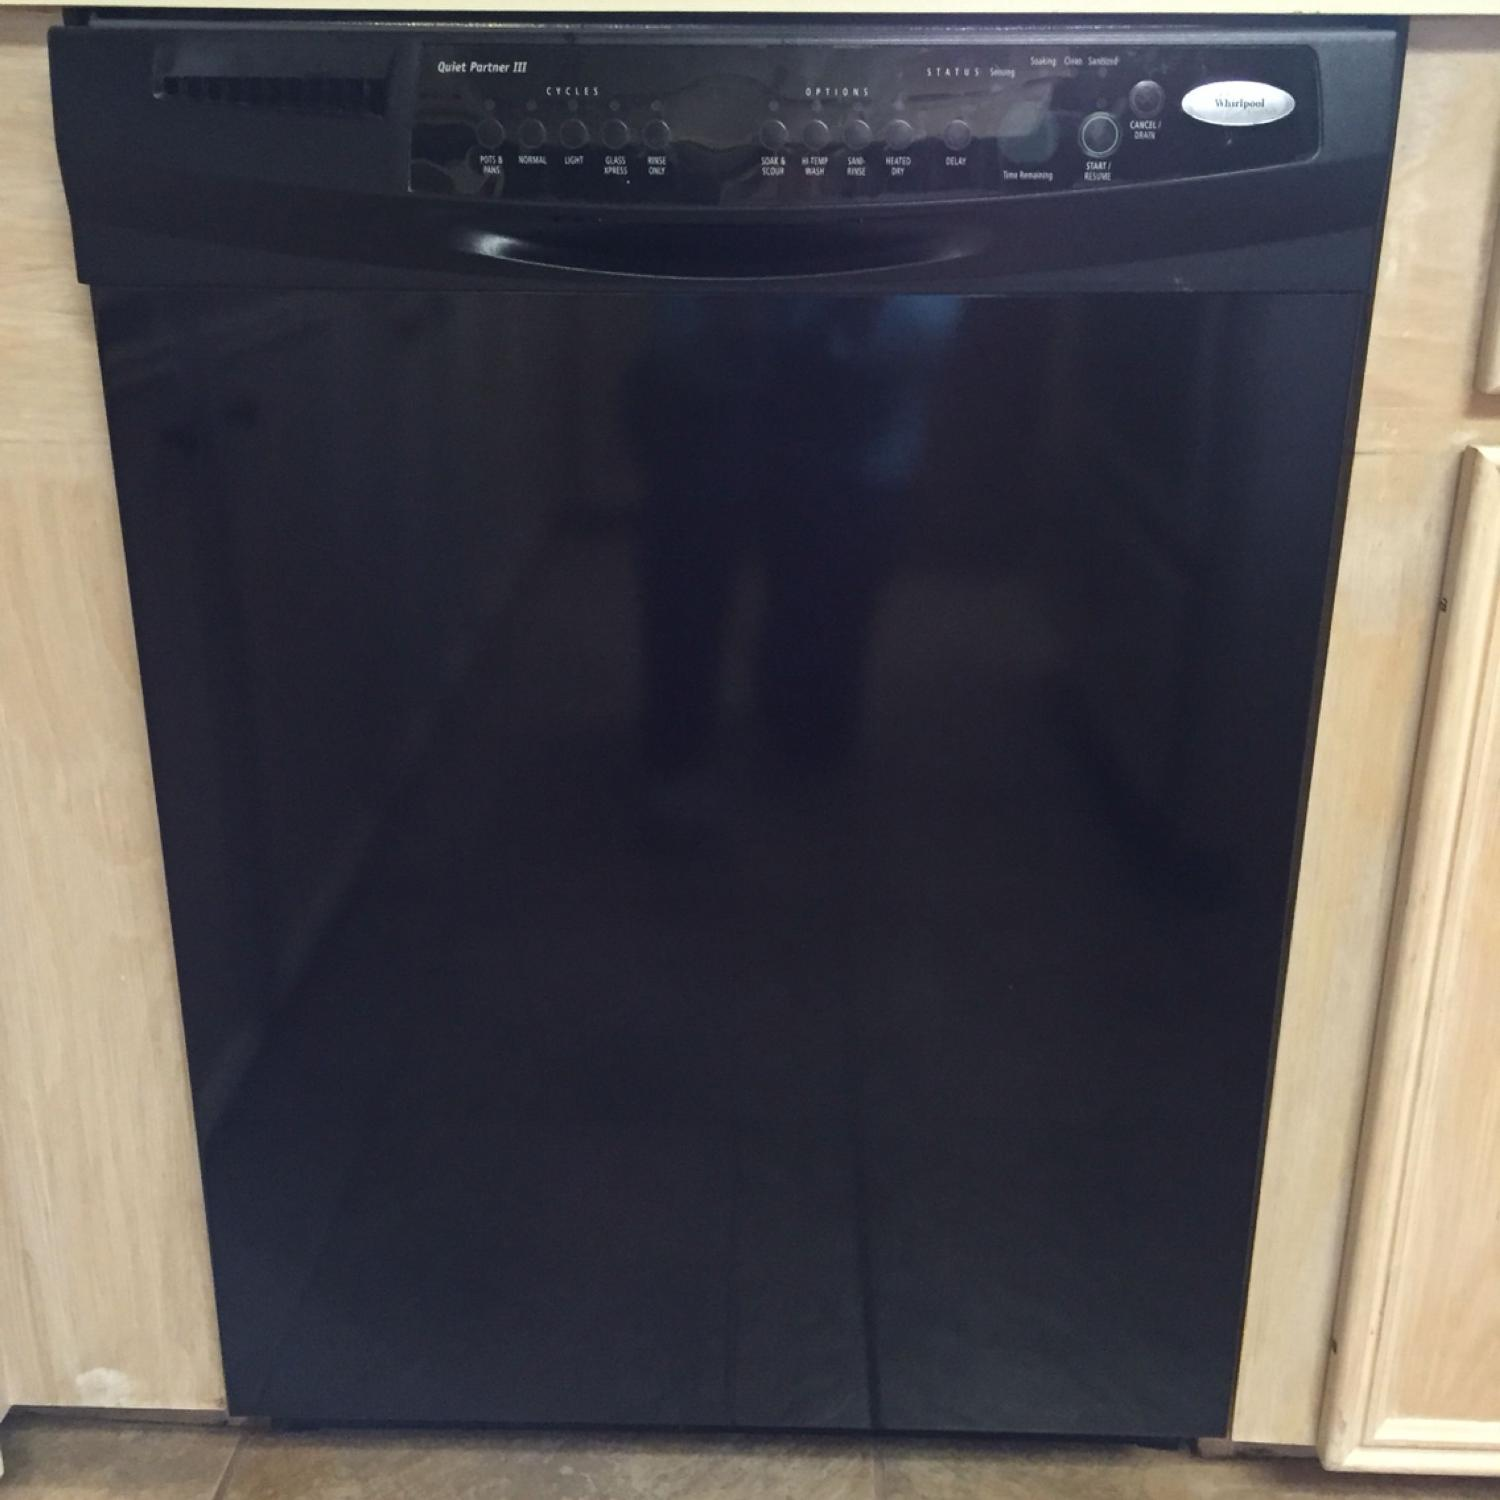 Black Whirlpool Gold Dishwasher Quiet Partner Iii Several Options For Washing Cycles In Very Good Condition